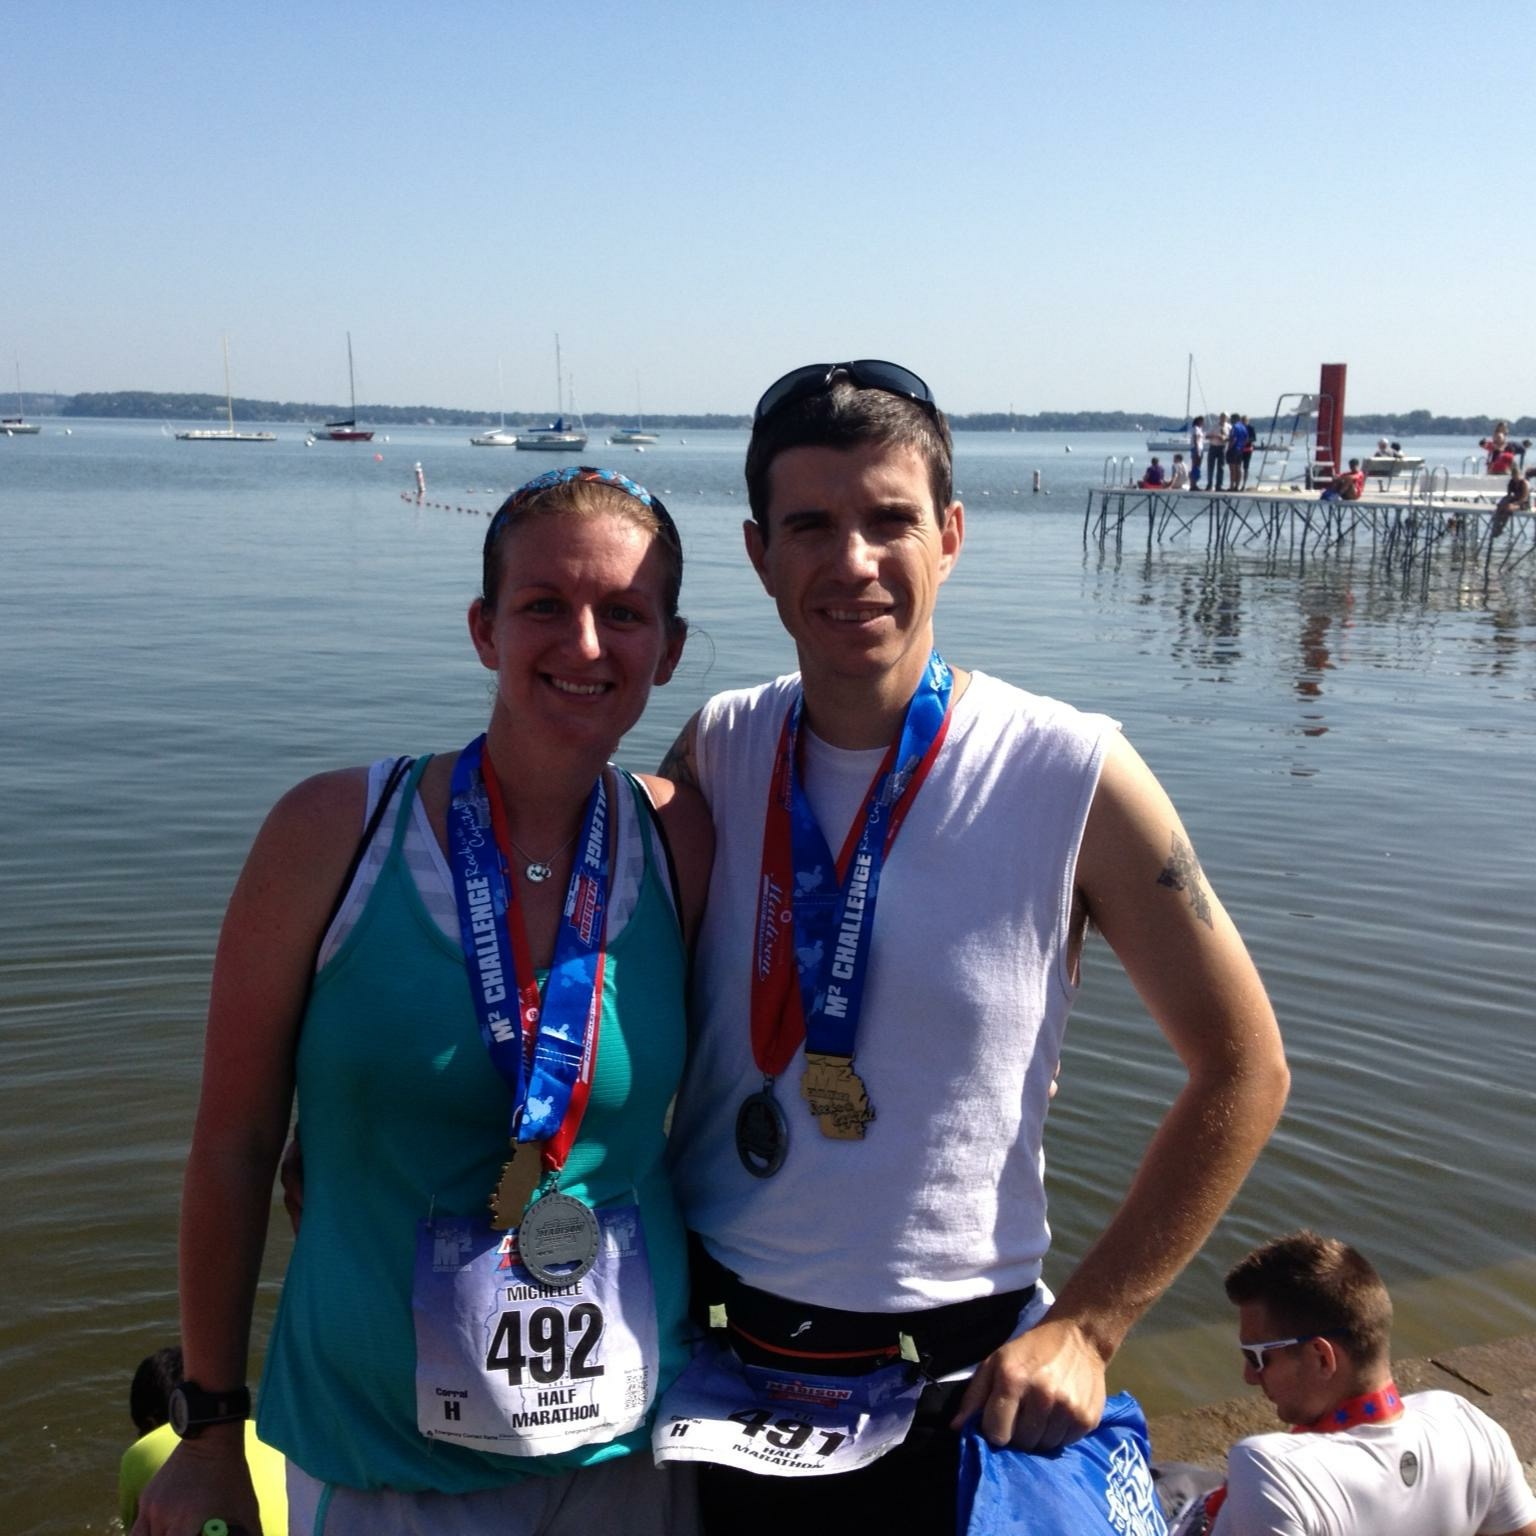 Michelle and Ed show off their medals after a race in Madison in 2013. Photo courtesy of Michelle Poelsterl.